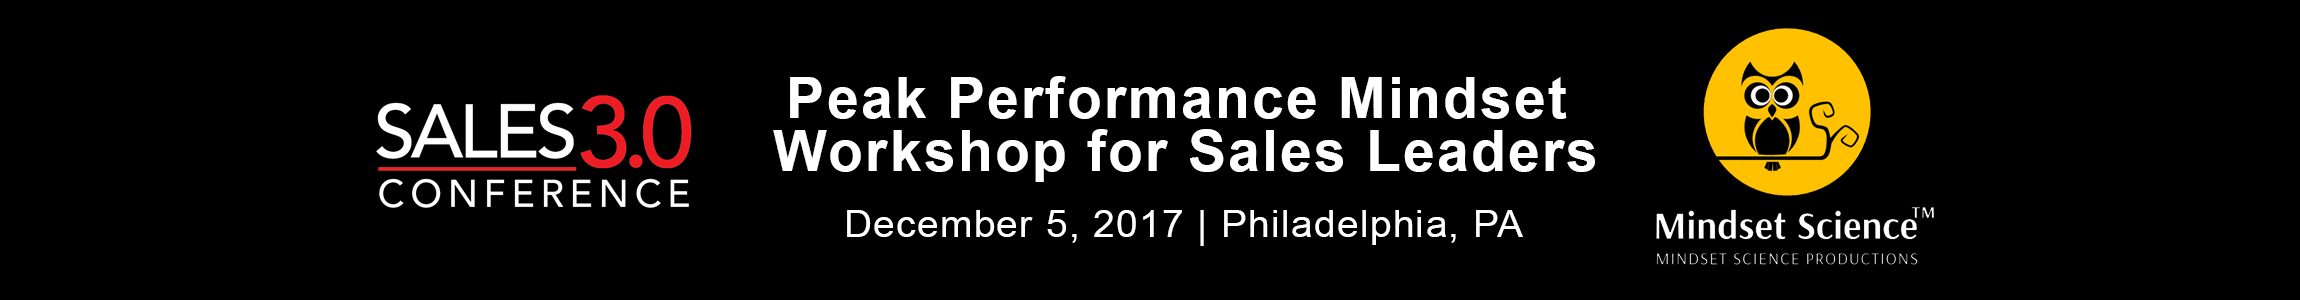 Peak Performance Mindset Workshop for Sales Leaders